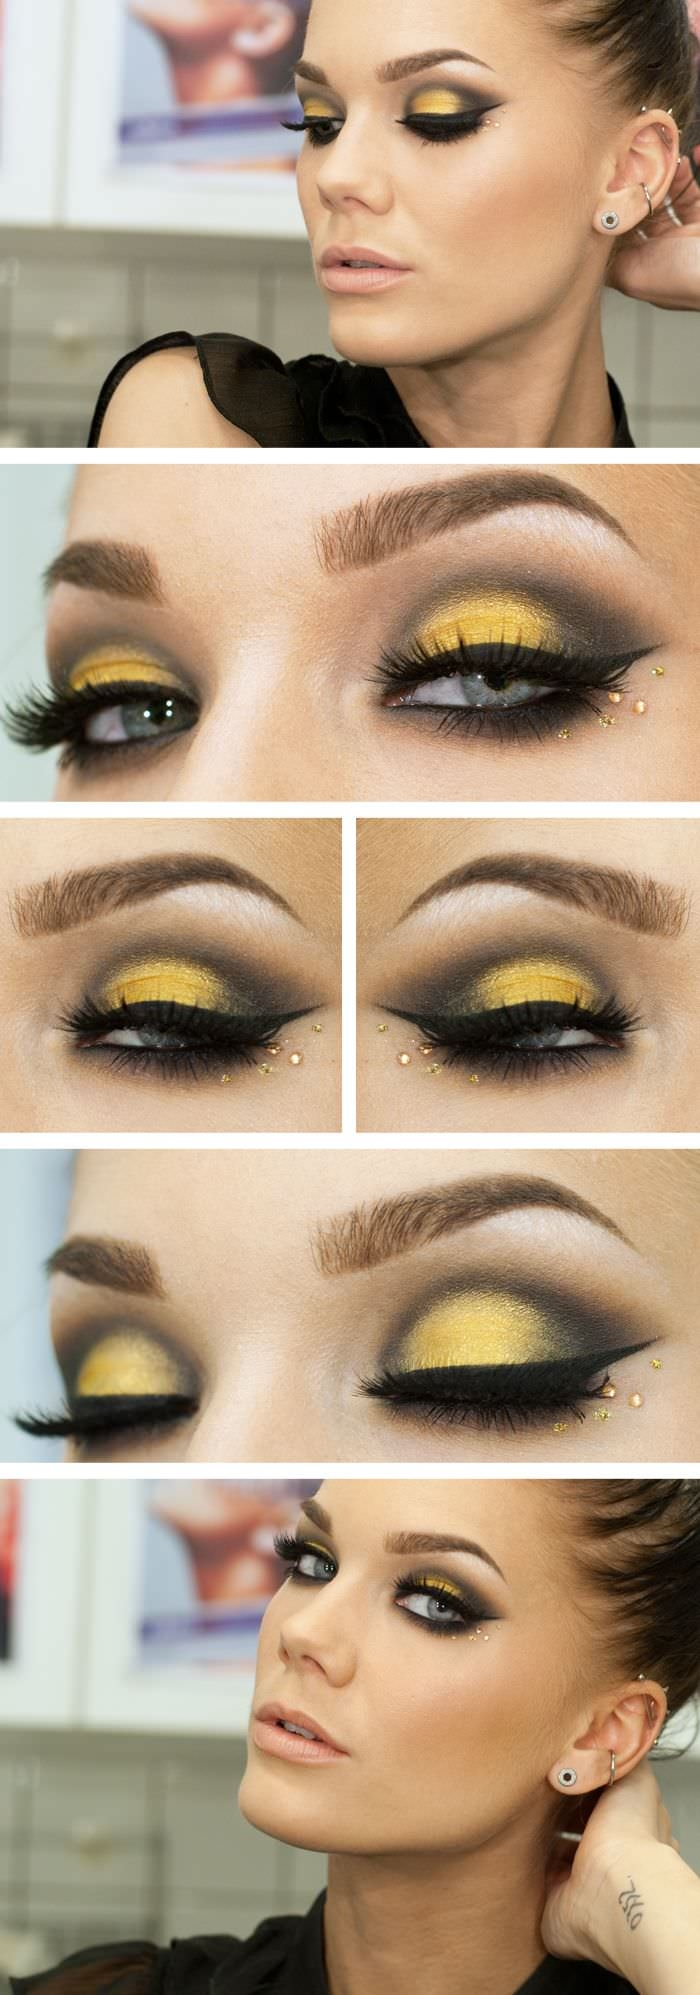 Disin Makeup: 60+ Eye Makeup Designs